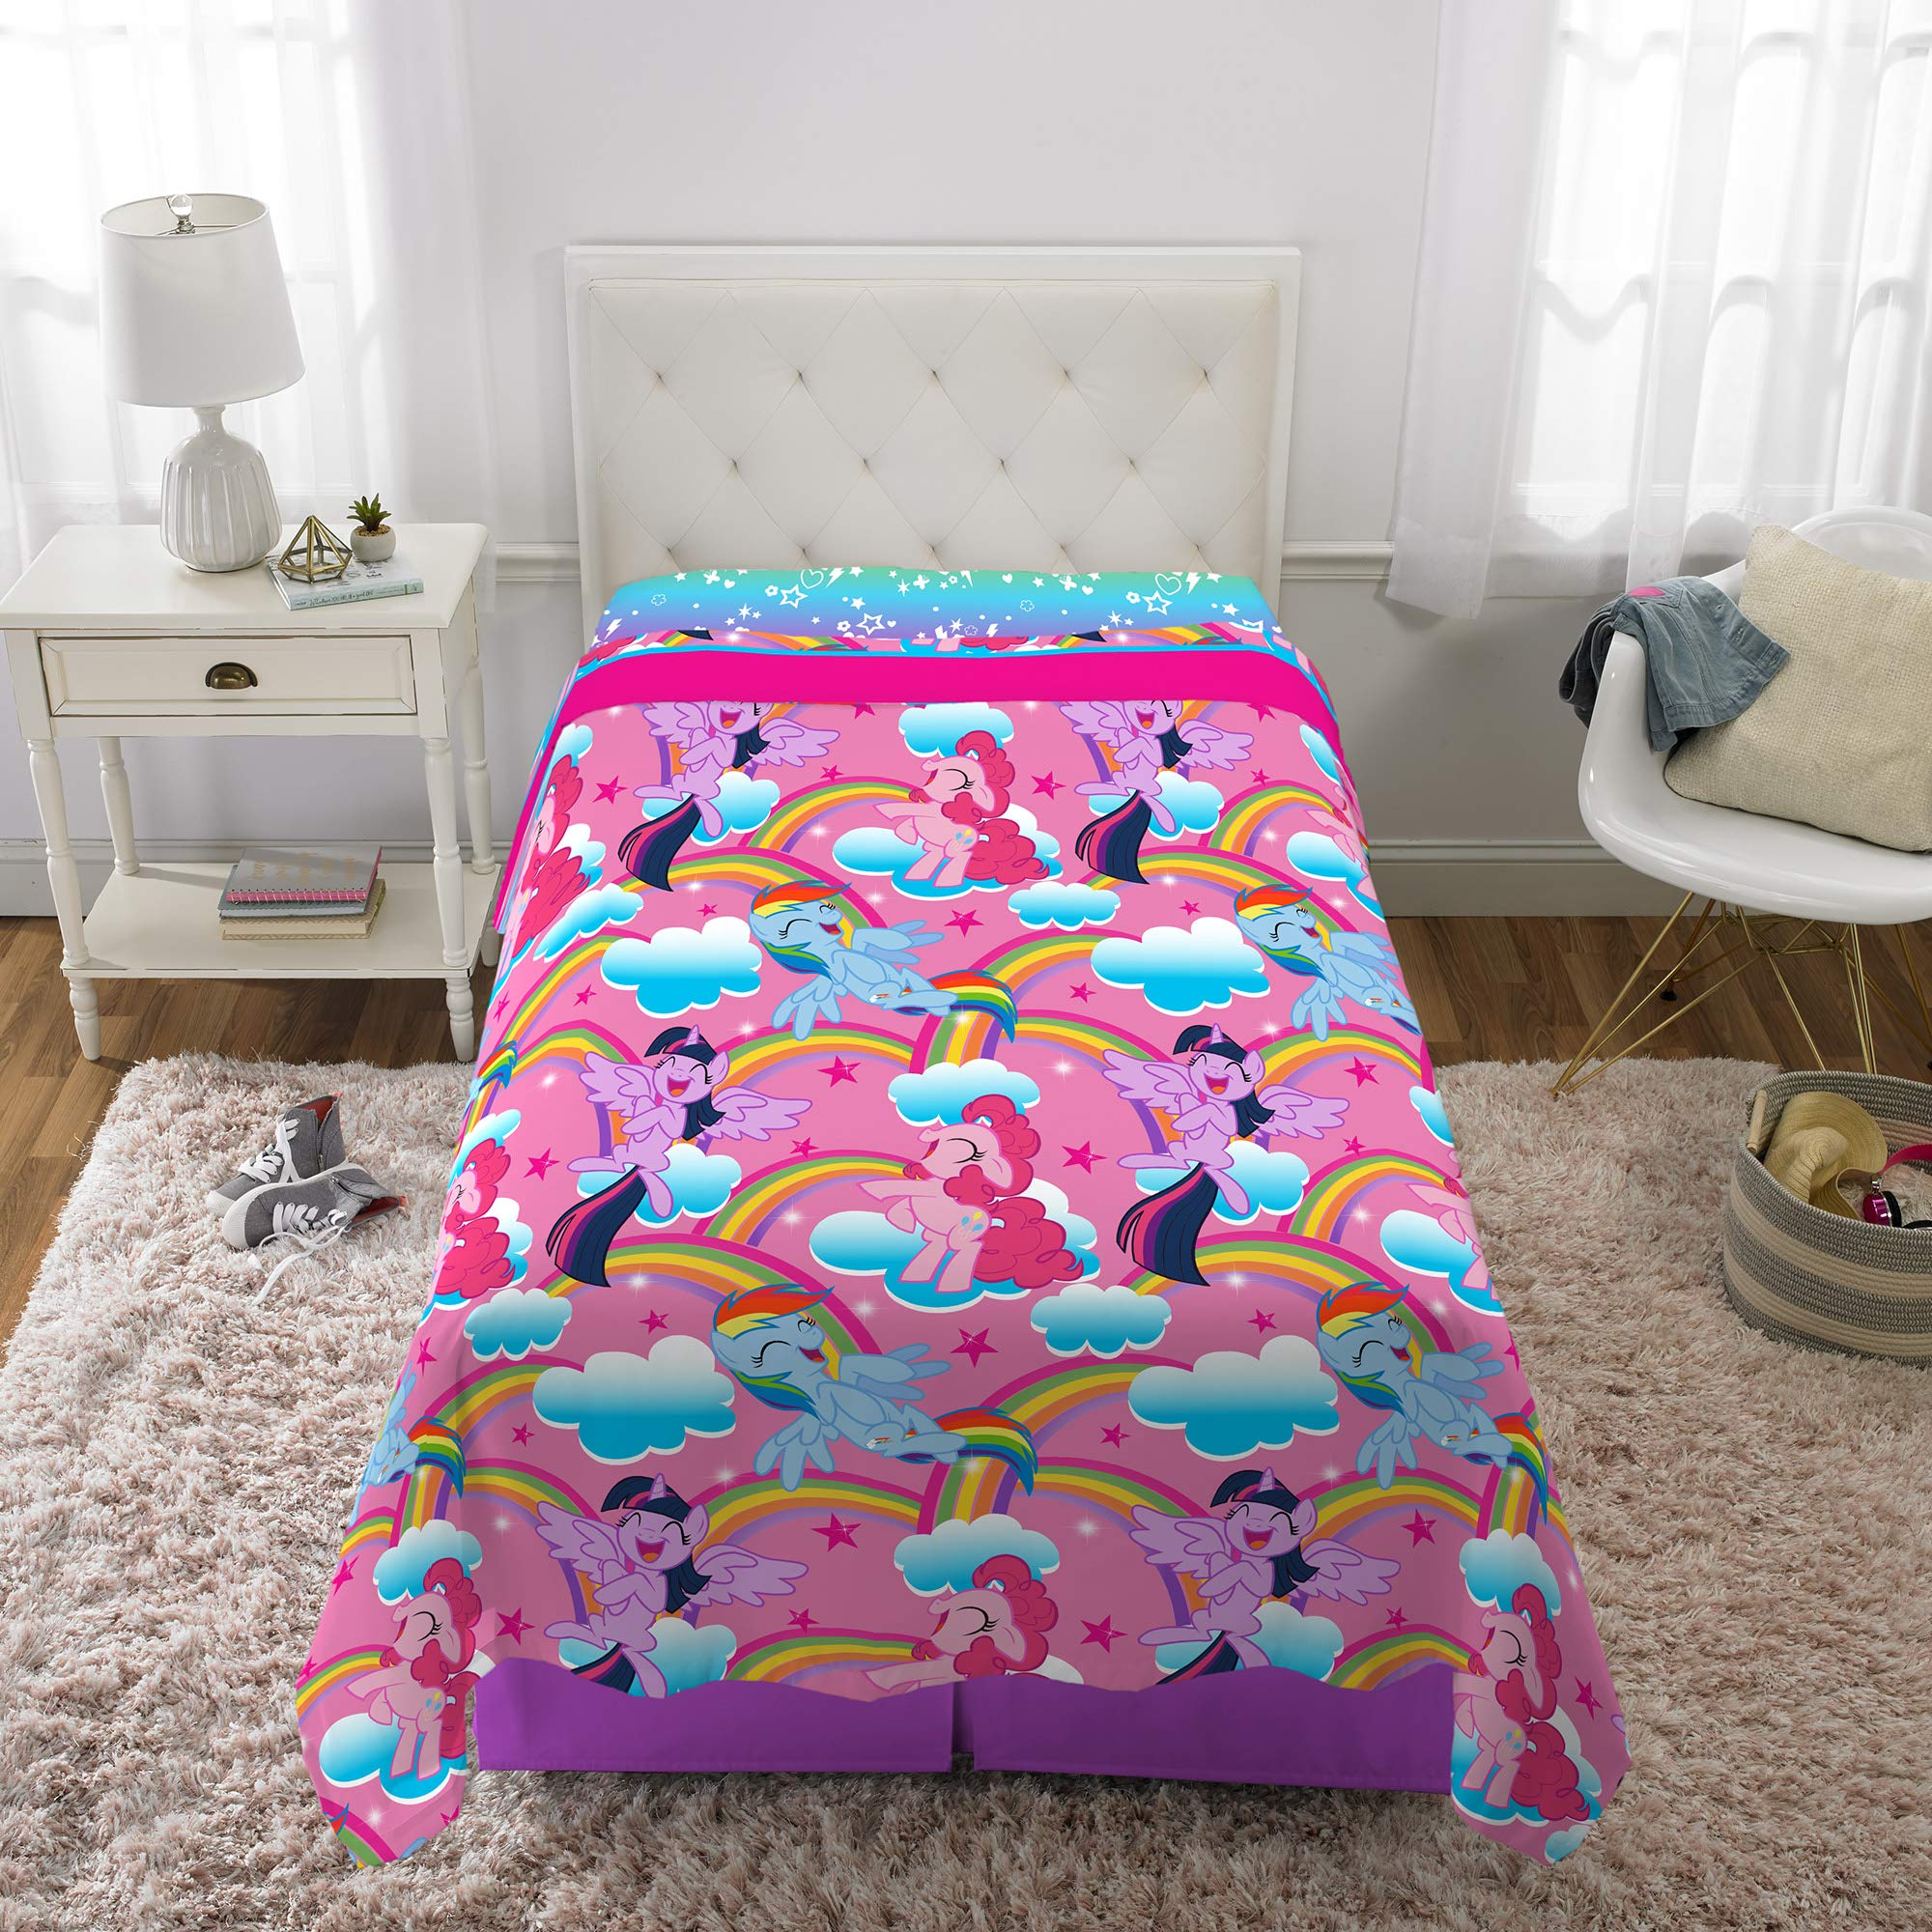 Franco Kids Bedding Super Soft Microfiber Sheet Set, 3 Piece Twin Size, Hasbro My Little Pony by Franco (Image #6)